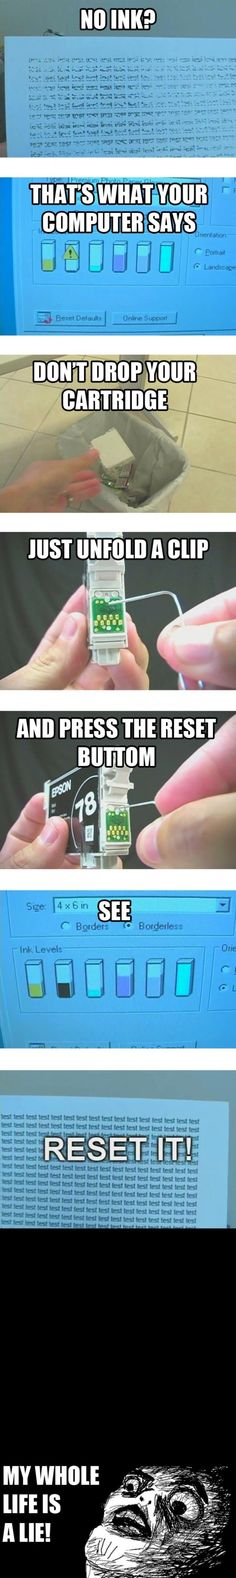 """Low"" Ink Cartridge Reset Button. I refill my cartridges over and over, but the reset button is a new trick for me and I love it!"